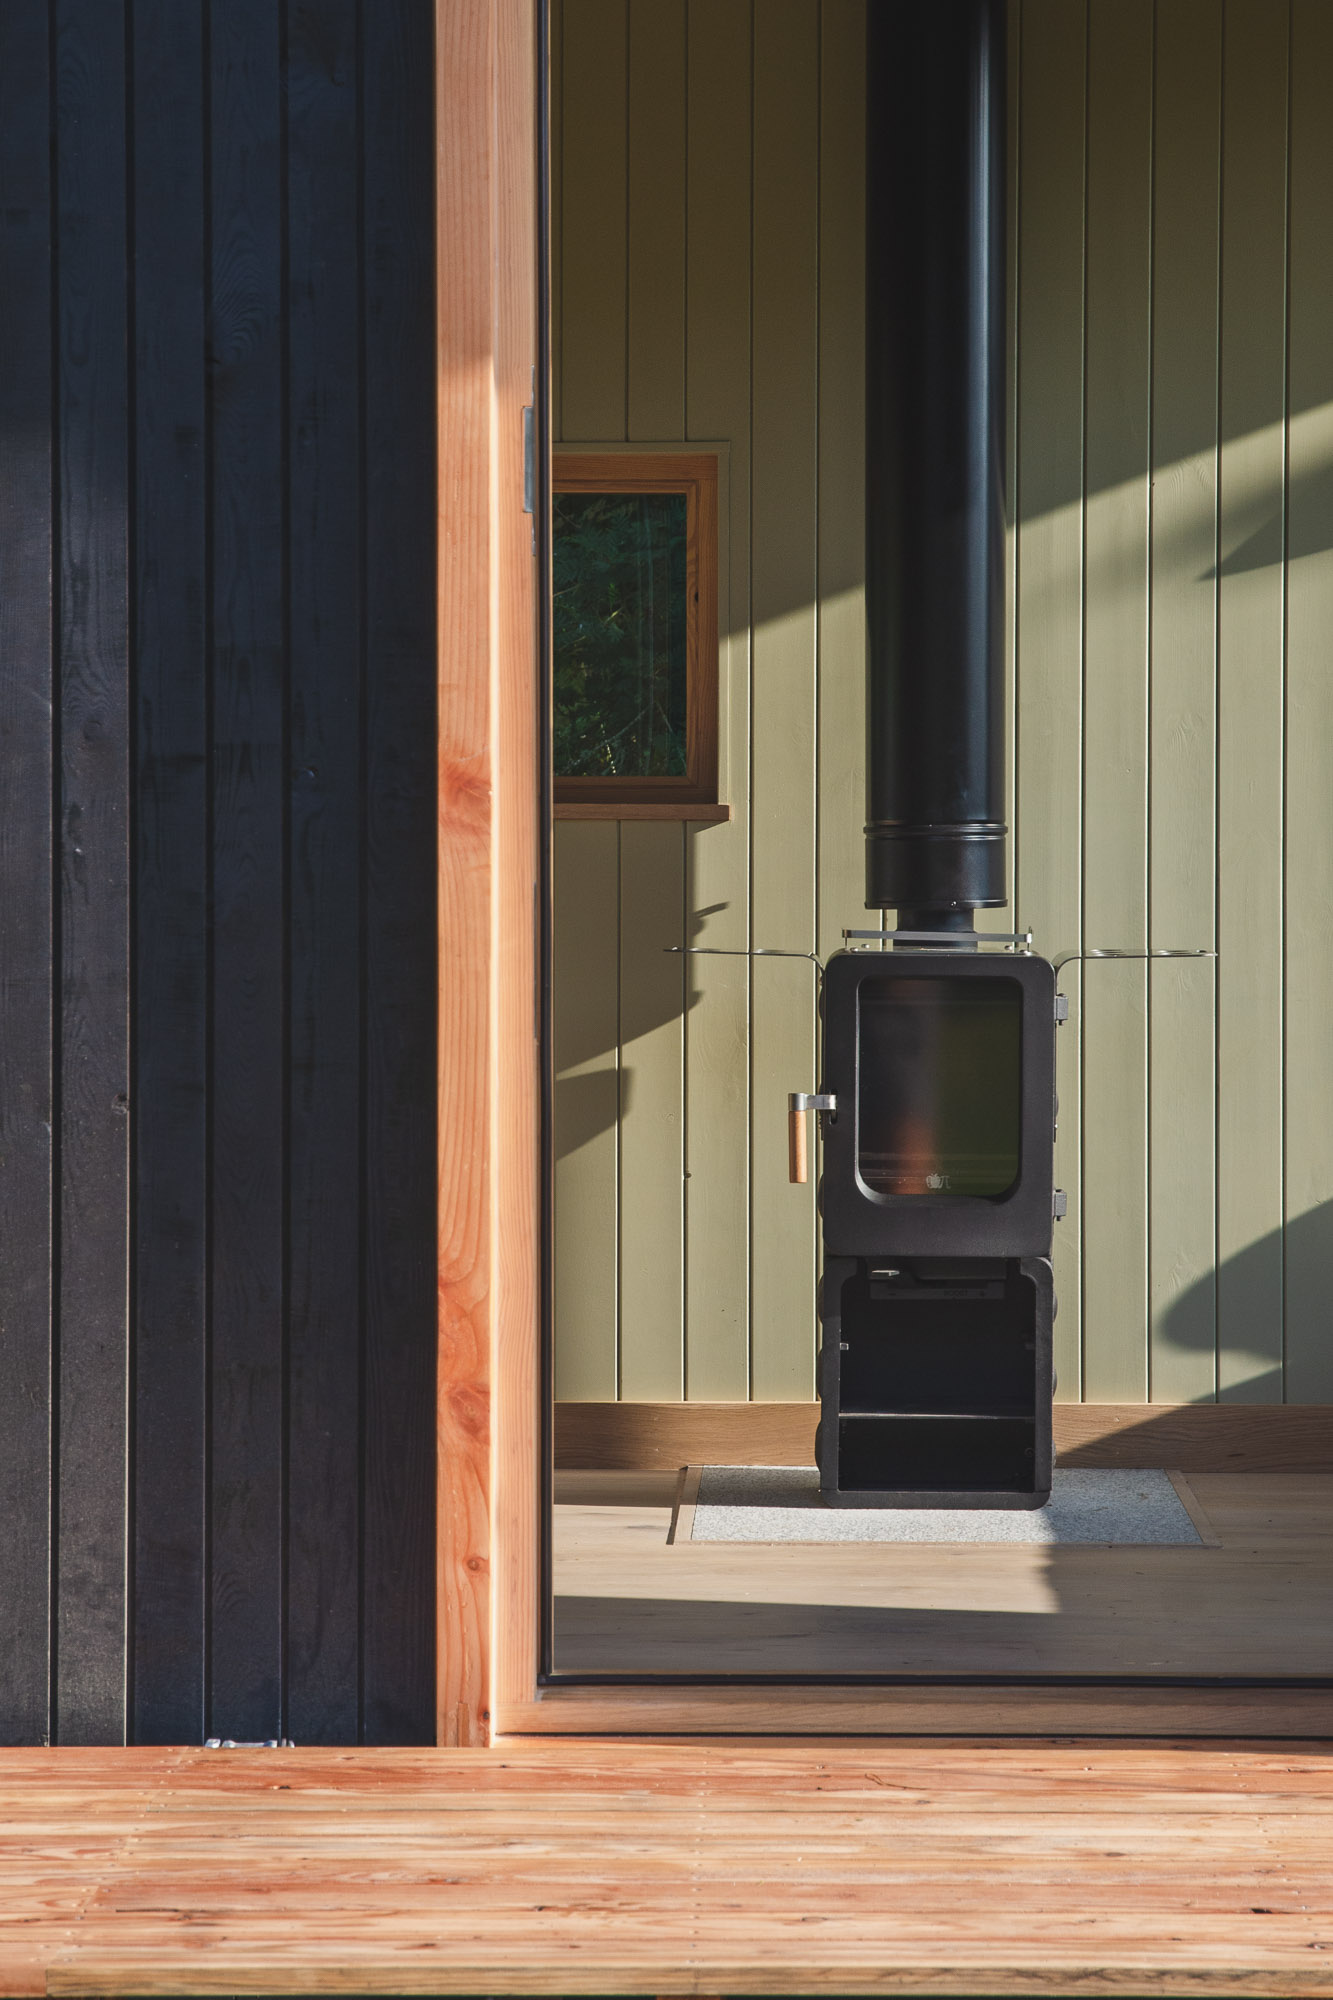 off grid tiny wooden nomad cabin with black cladding and tongue and groove panelling with wood burning stove and stable door